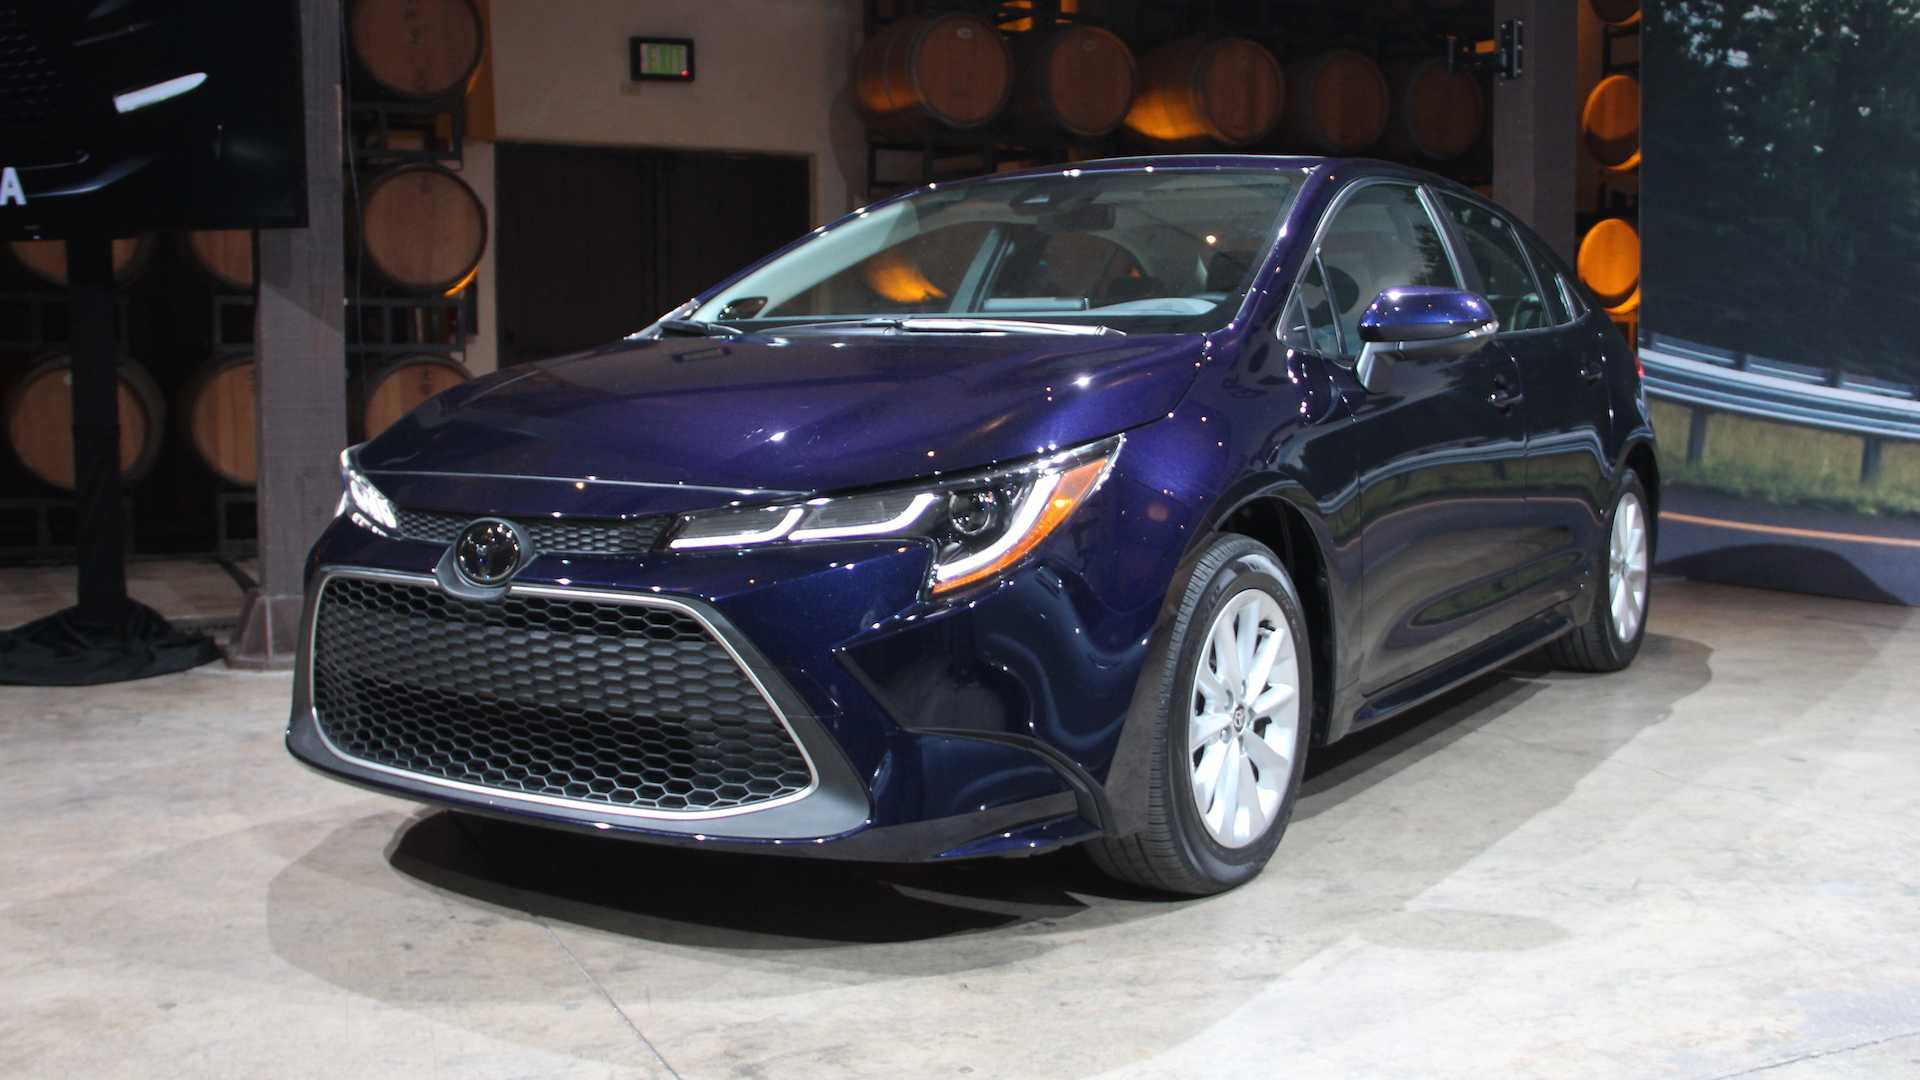 84 All New Toyota Altis 2020 Thailand Picture